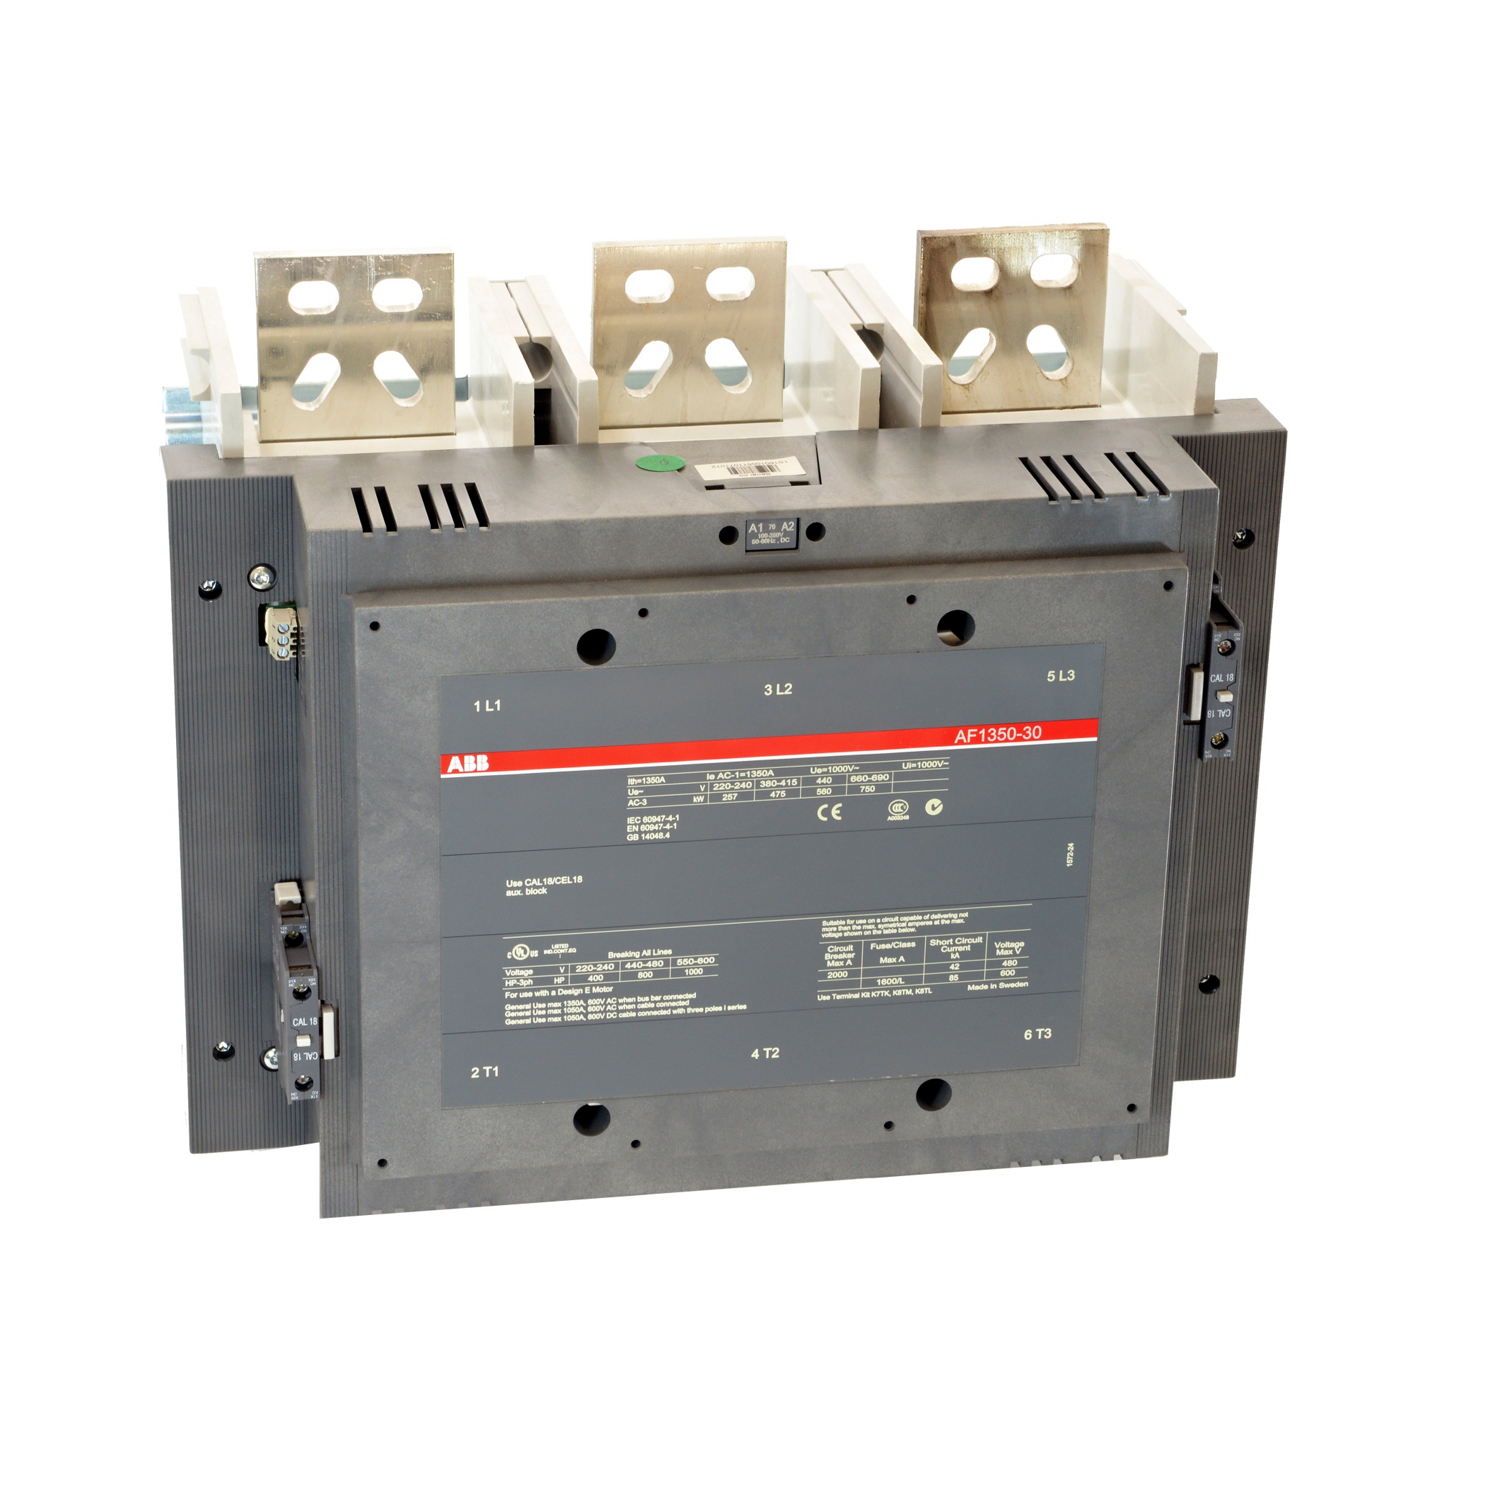 af1350302270_ab1 industrial control motor starter controls contactors standard siemens clm lighting contactor wiring diagram at mifinder.co